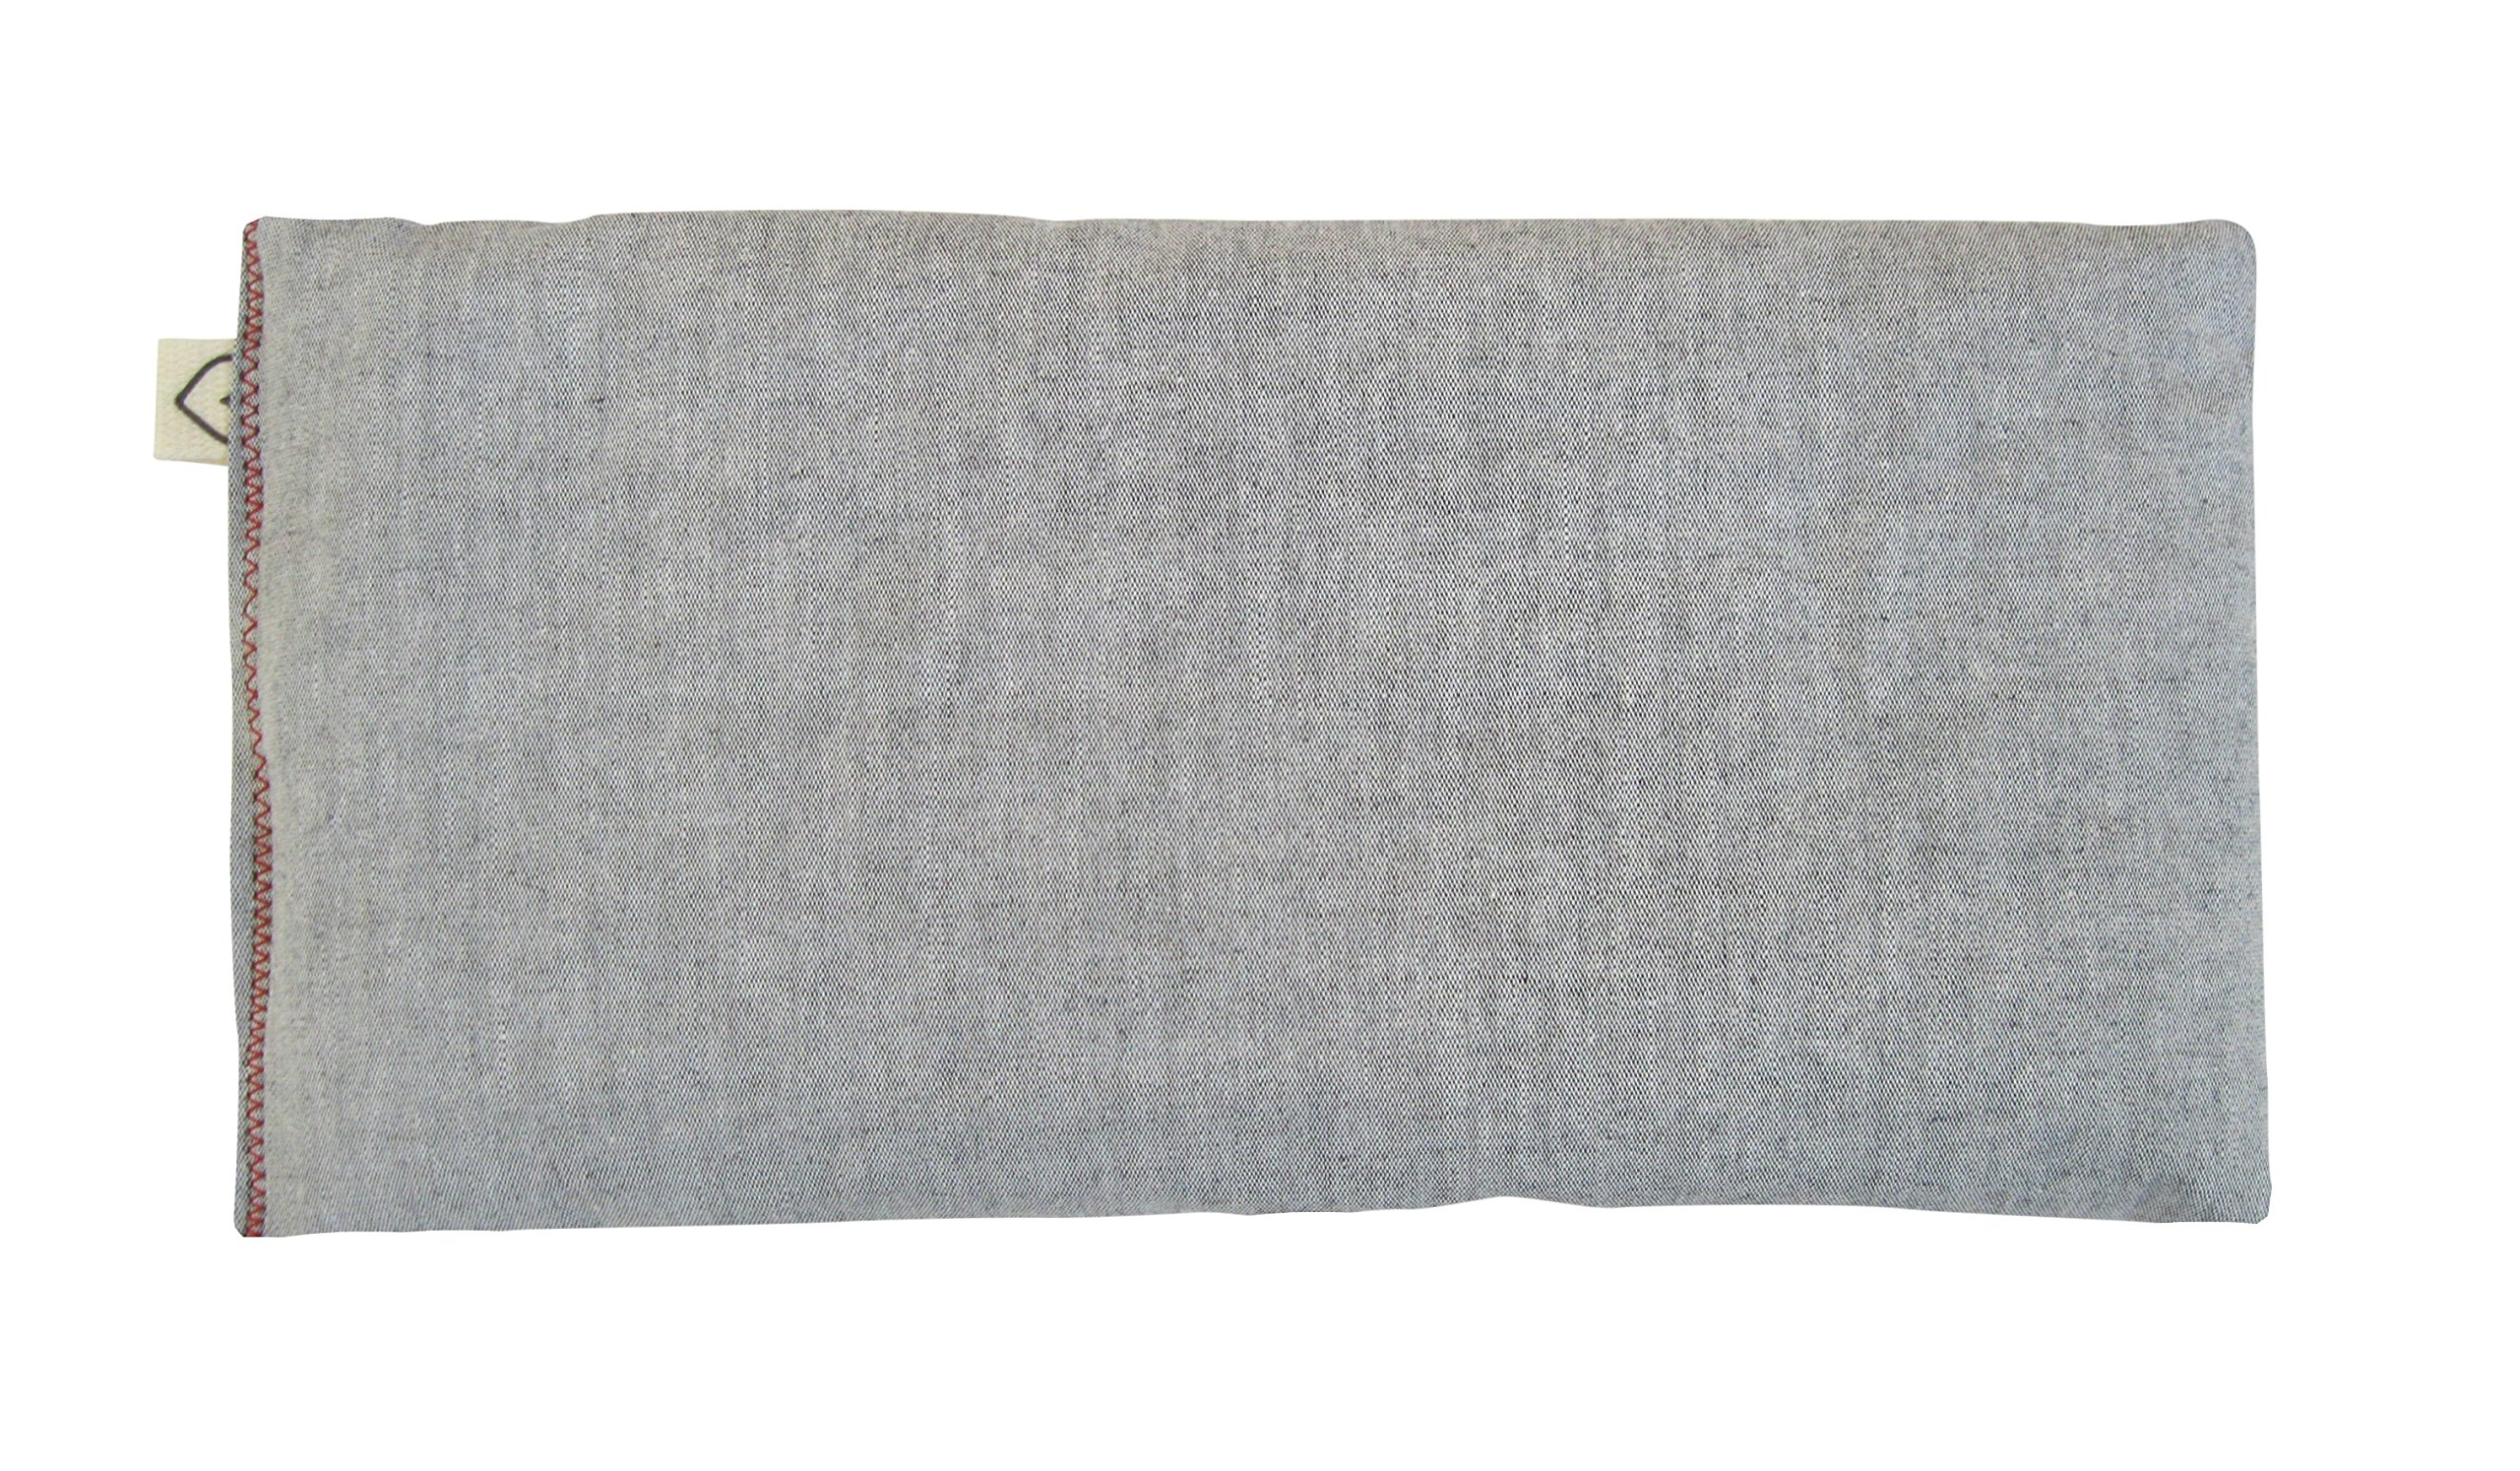 Peacegoods SCENTED Lavender Flax Seed Eye Pillow - 4 x 8.5 - Soft & Soothing Cotton - Naturally Calming Colors - gray charcoal by Peacegoods